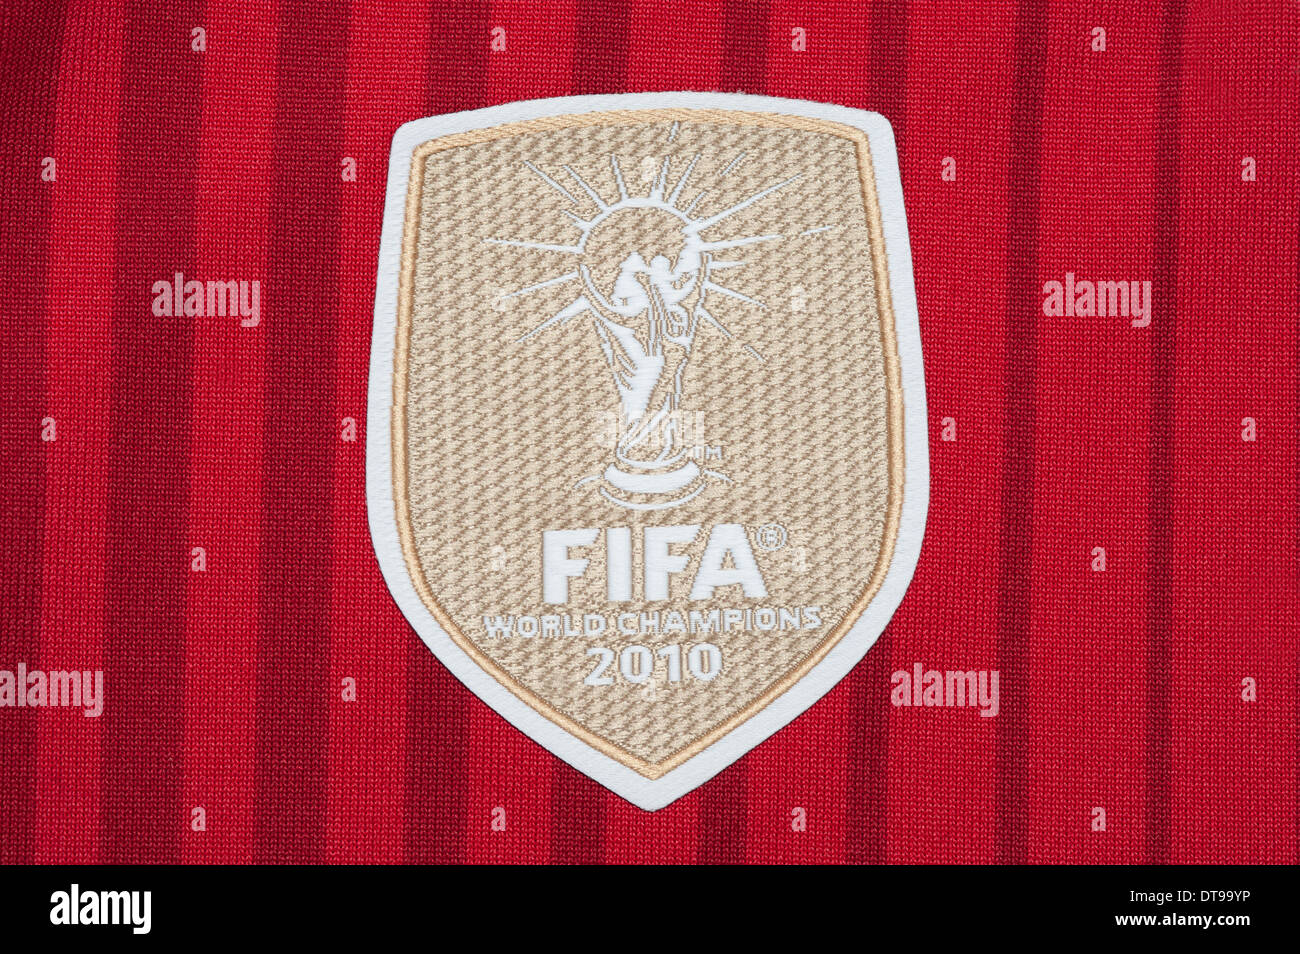 Close up of a FIFA World Champions Badge as seen on the Spanish National team kit - Stock Image